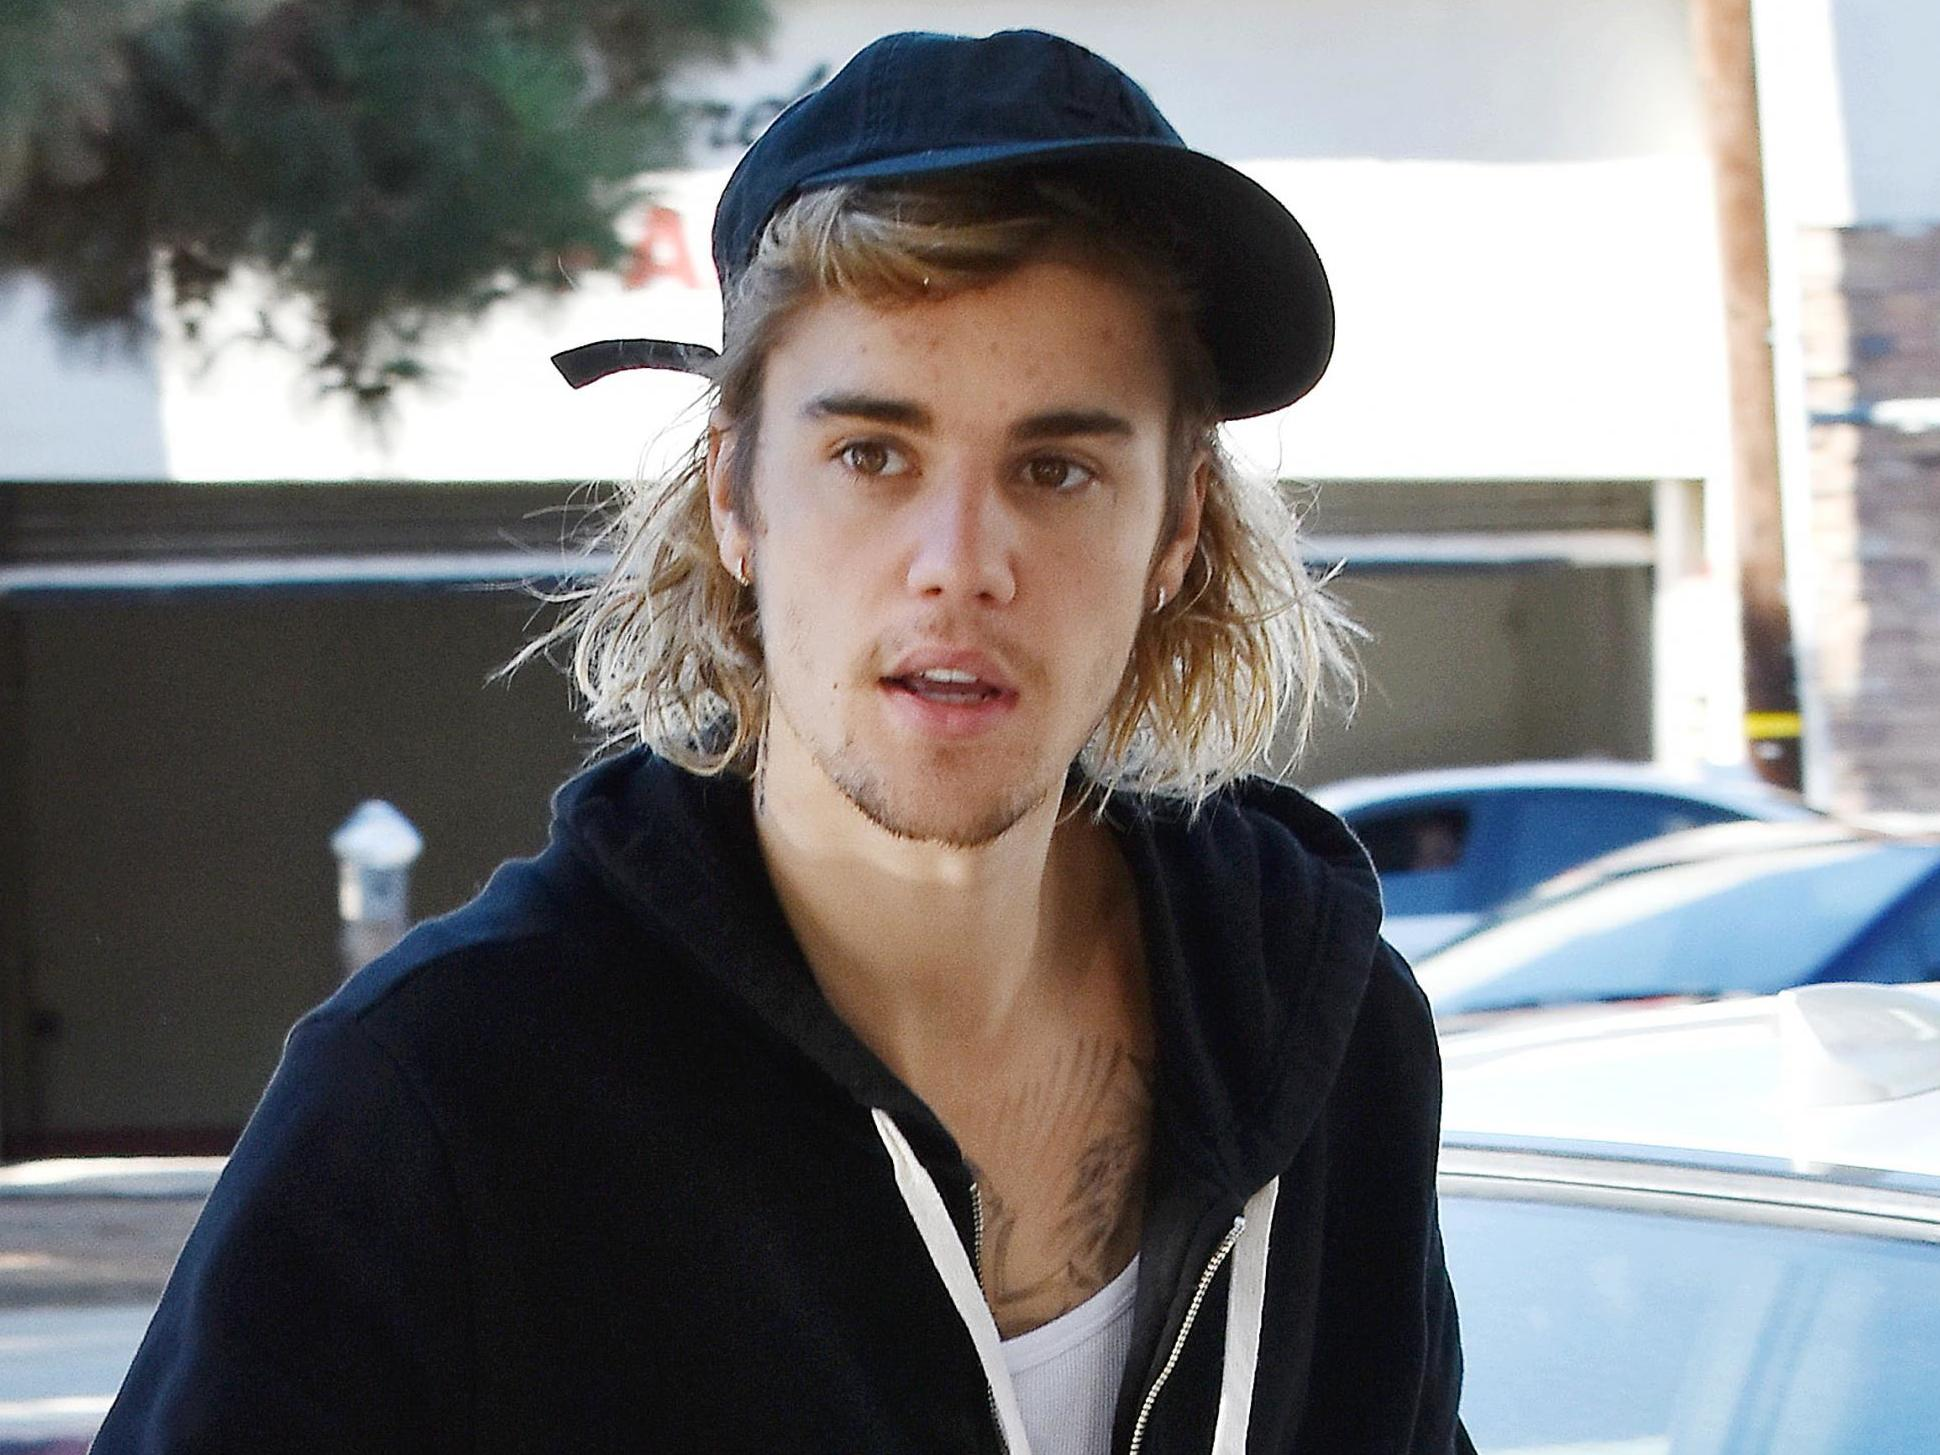 Justin Bieber - latest news, breaking stories and comment - The